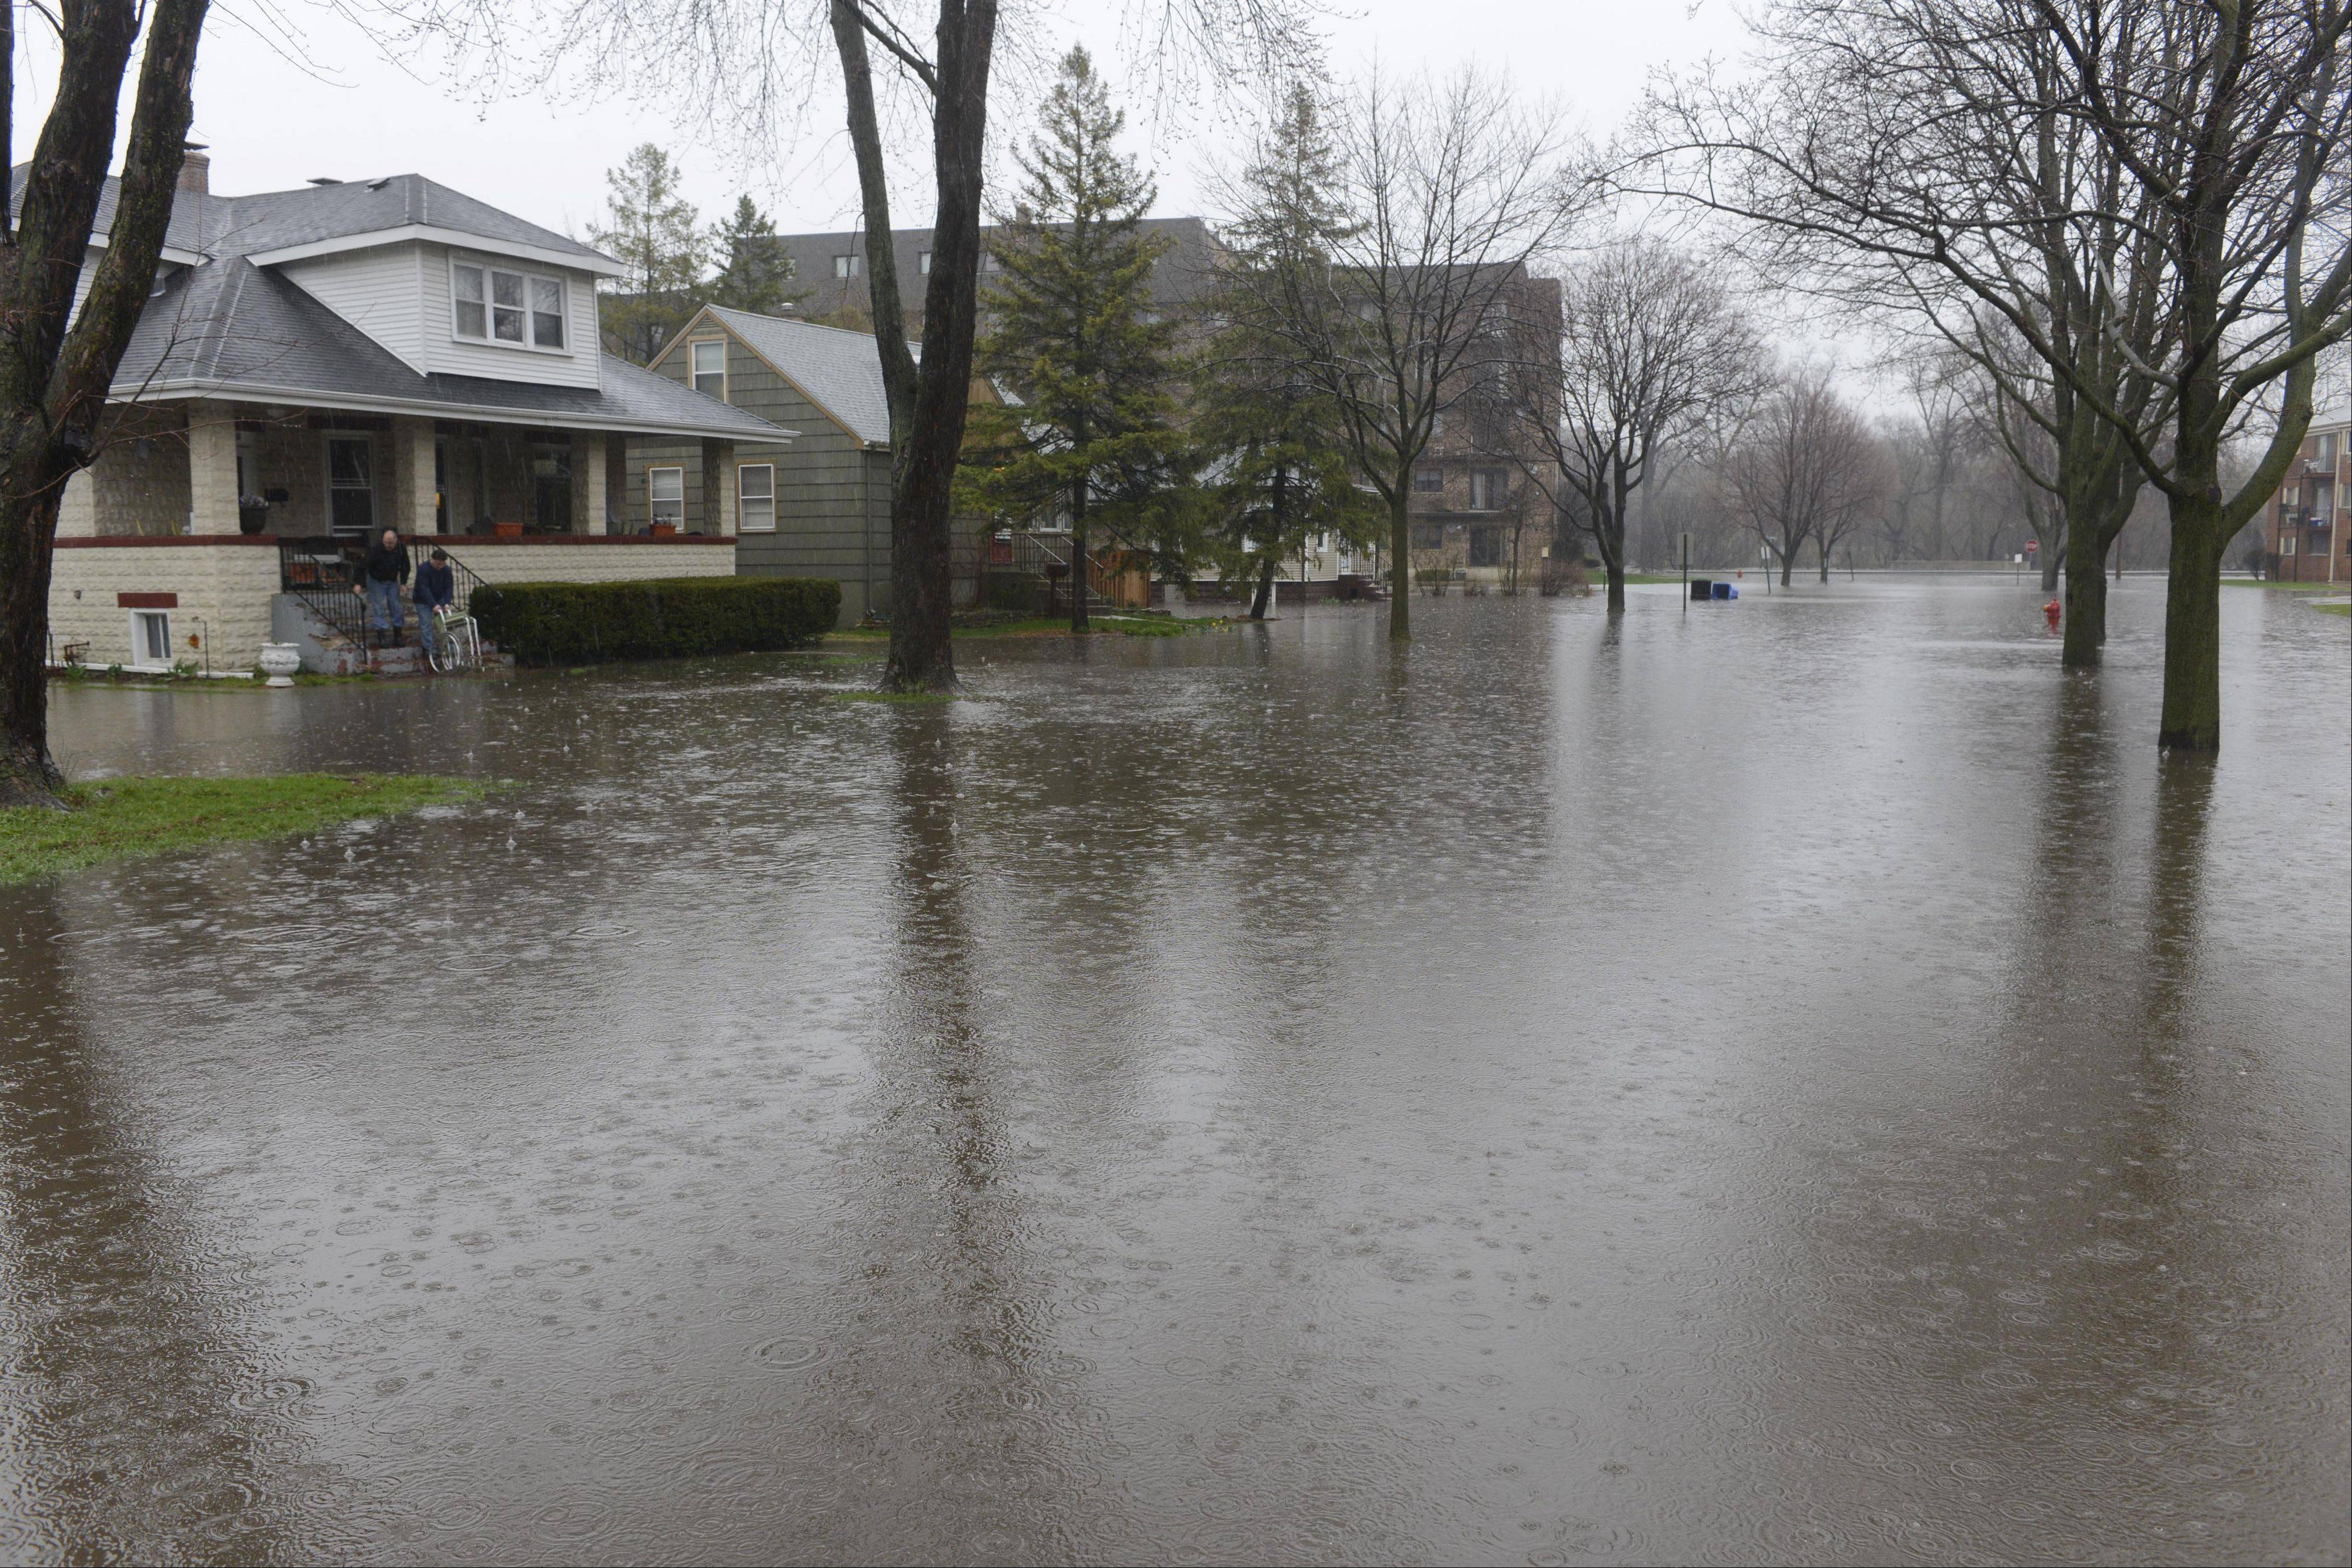 Oakwood Avenue in Des Plaines, just east of the River, is closed due to flooding Thursday.